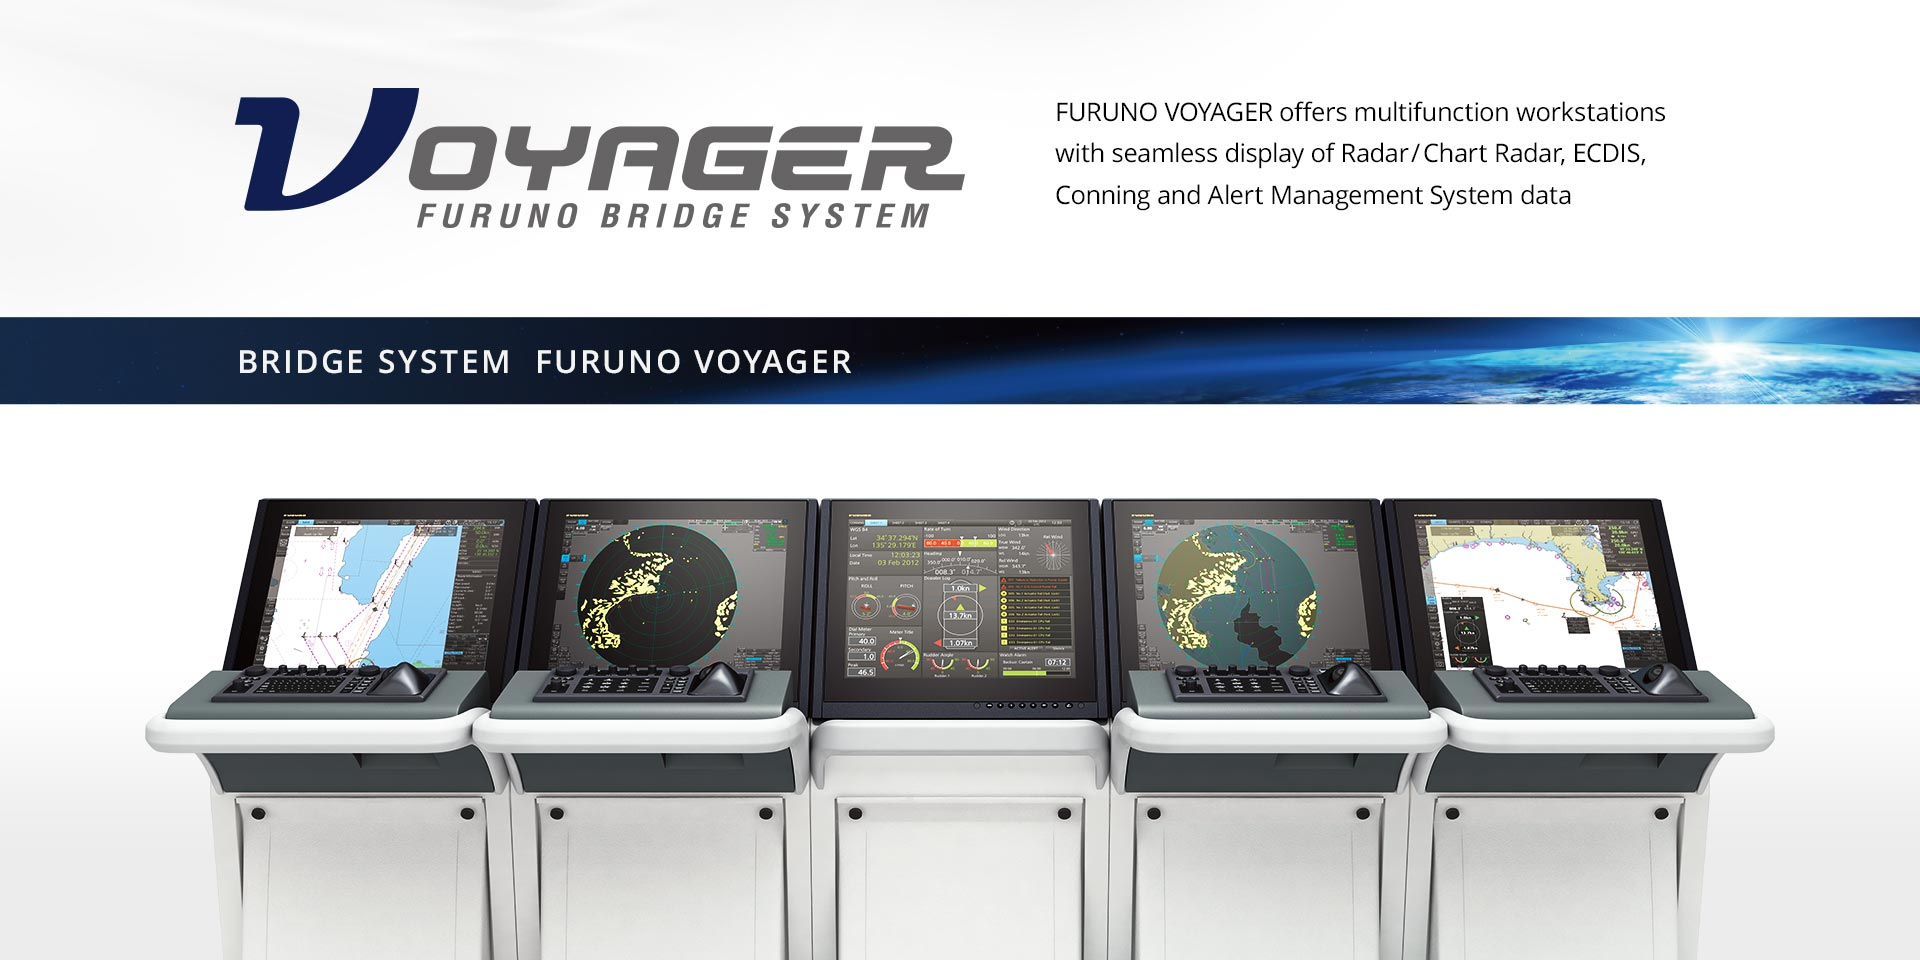 FURUNO VOYAGER, the next-generation bridge system